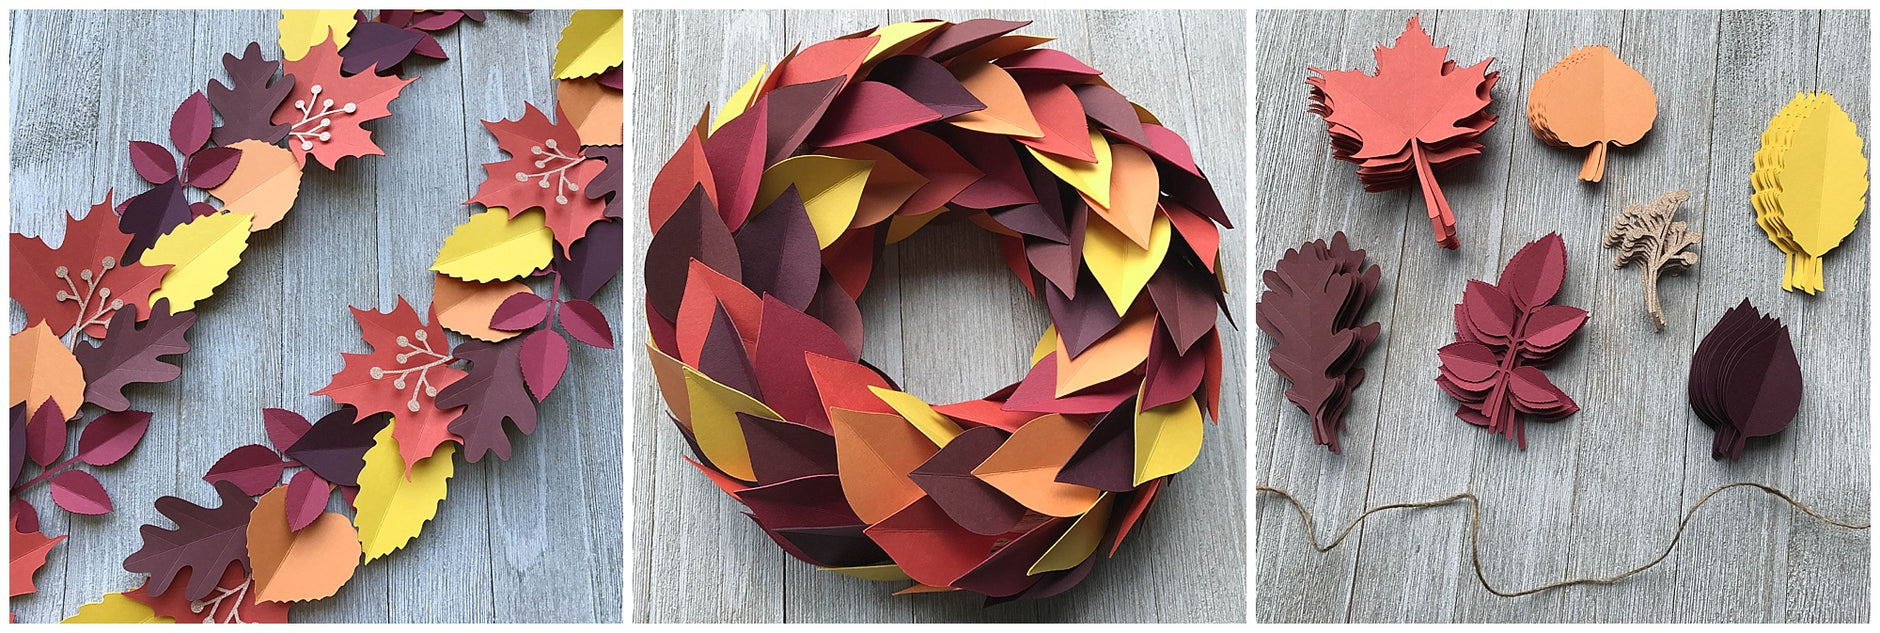 DIY Paper Leaves Garland and Wreath